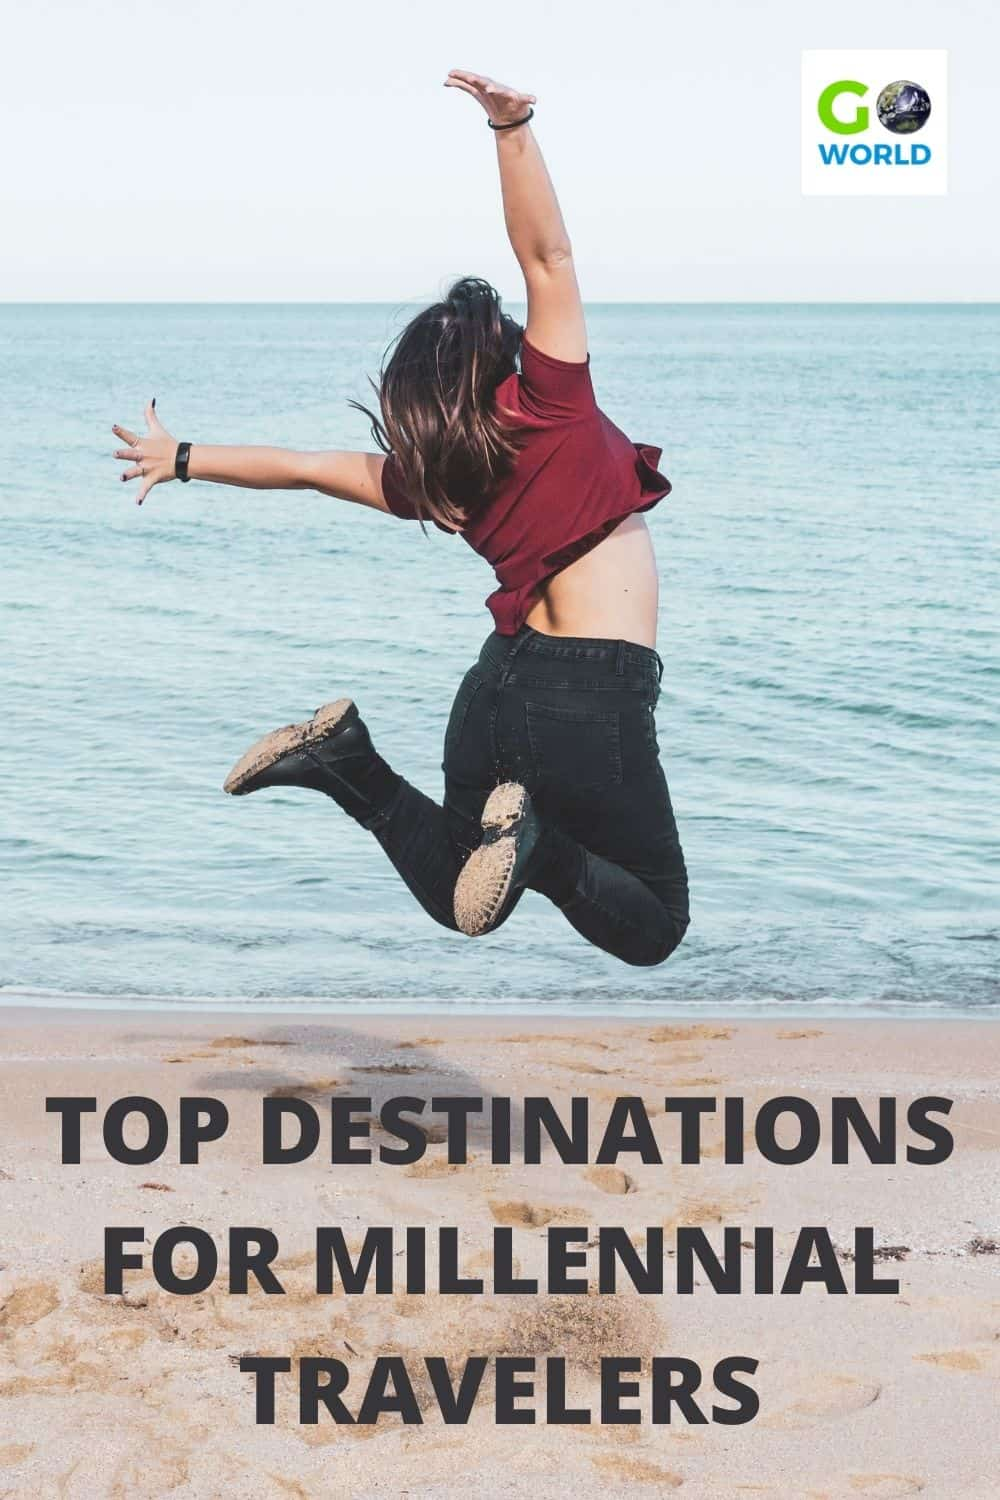 There's something so special about travelling when you're young, which is why Millennials and Gen Z's should travel sooner rather than later. Here are five destinations young travelers should instantly add to their list of places to travel. #MillennialTravel #TopDestinationsforMillennials #TravelingYoung